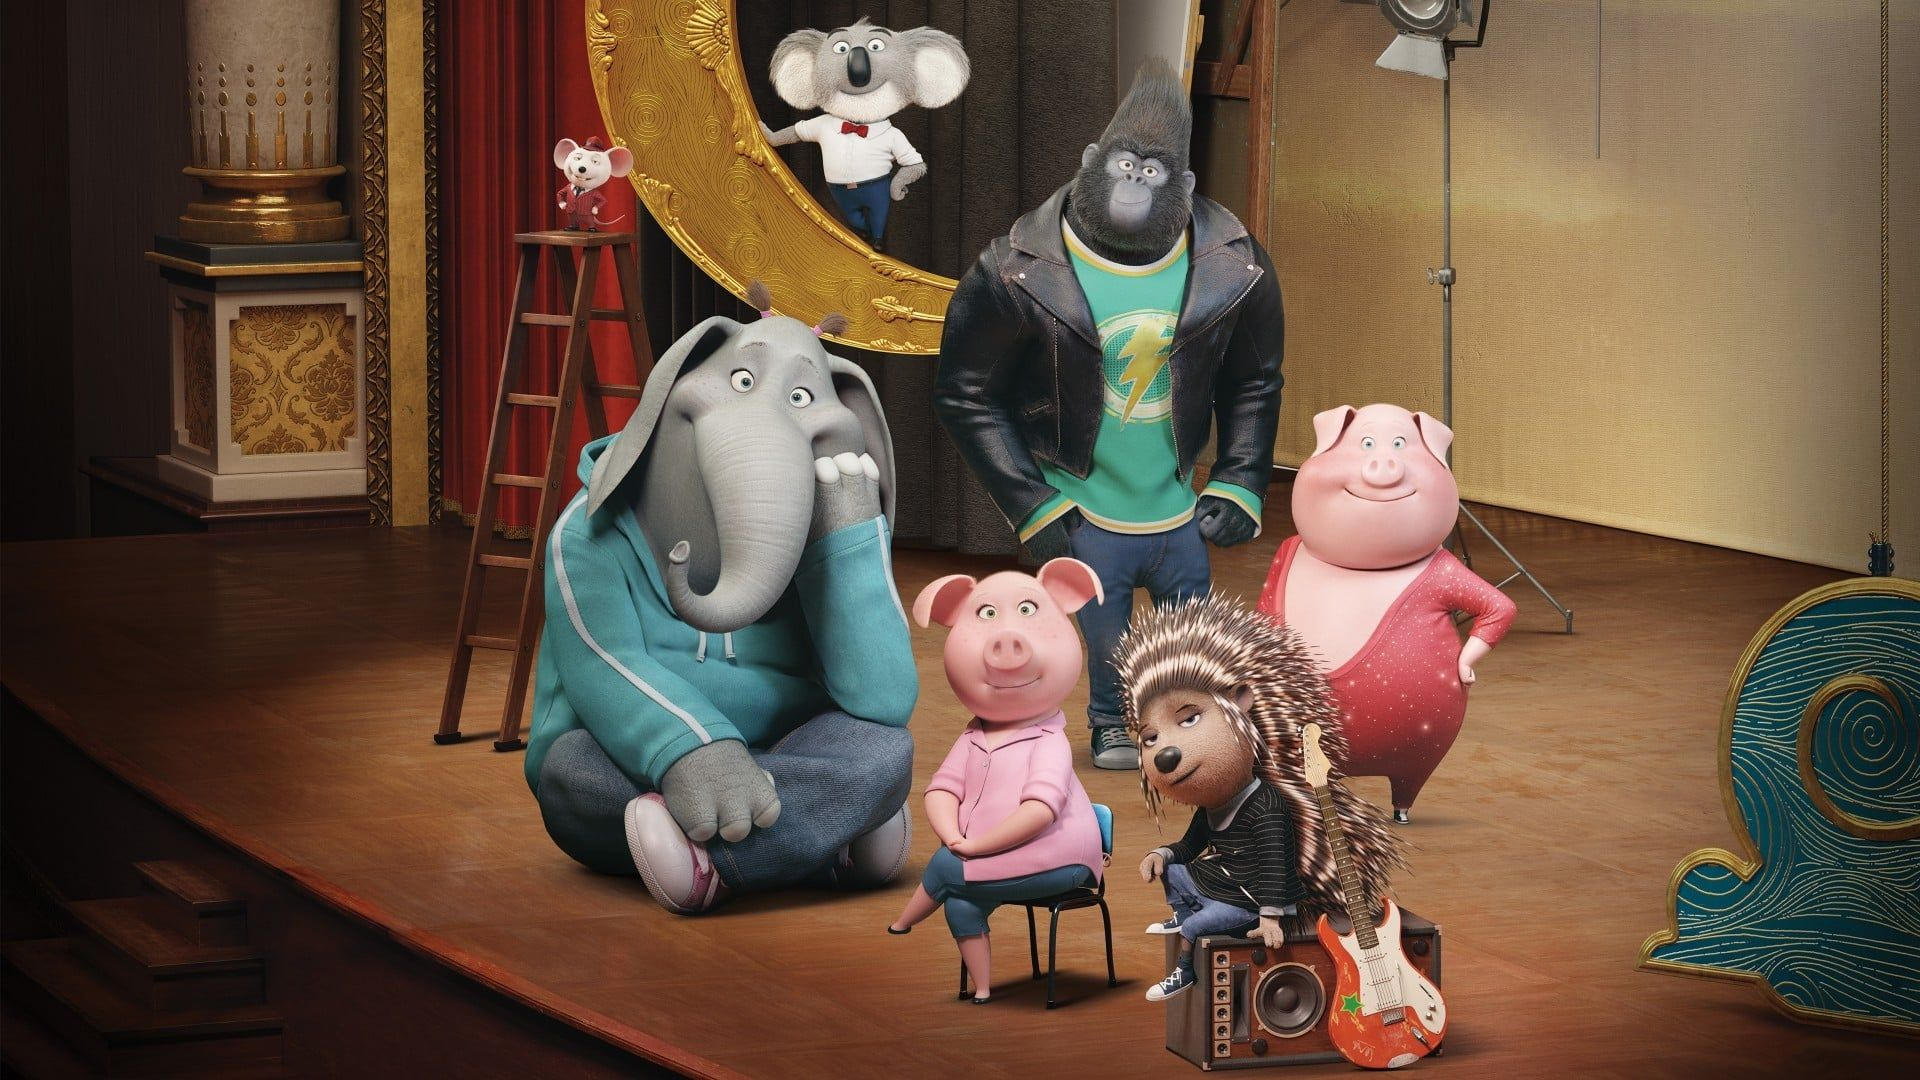 Sing 2016 Streaming Ita Cb01 Film Completo Cinema Guarda Sing Italiano 2016 Film Streaming Altadefinizione Cb0 Film Di Animazione Commedia Film Completi